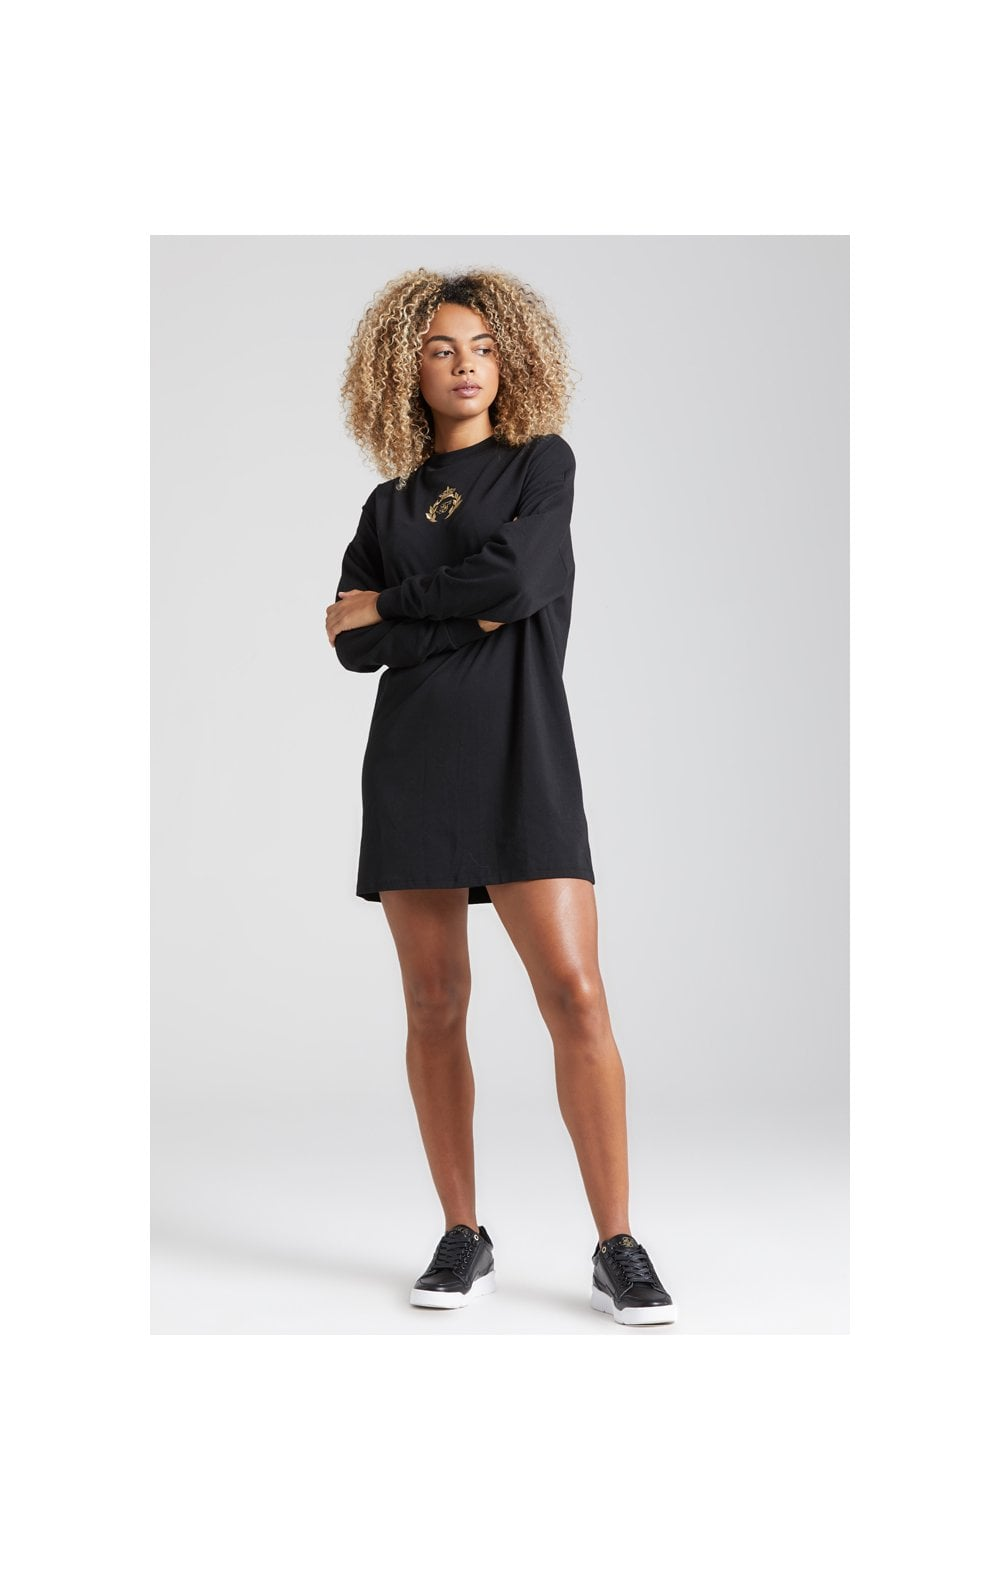 SikSilk Prestige Tshirt Dress - Black (4)